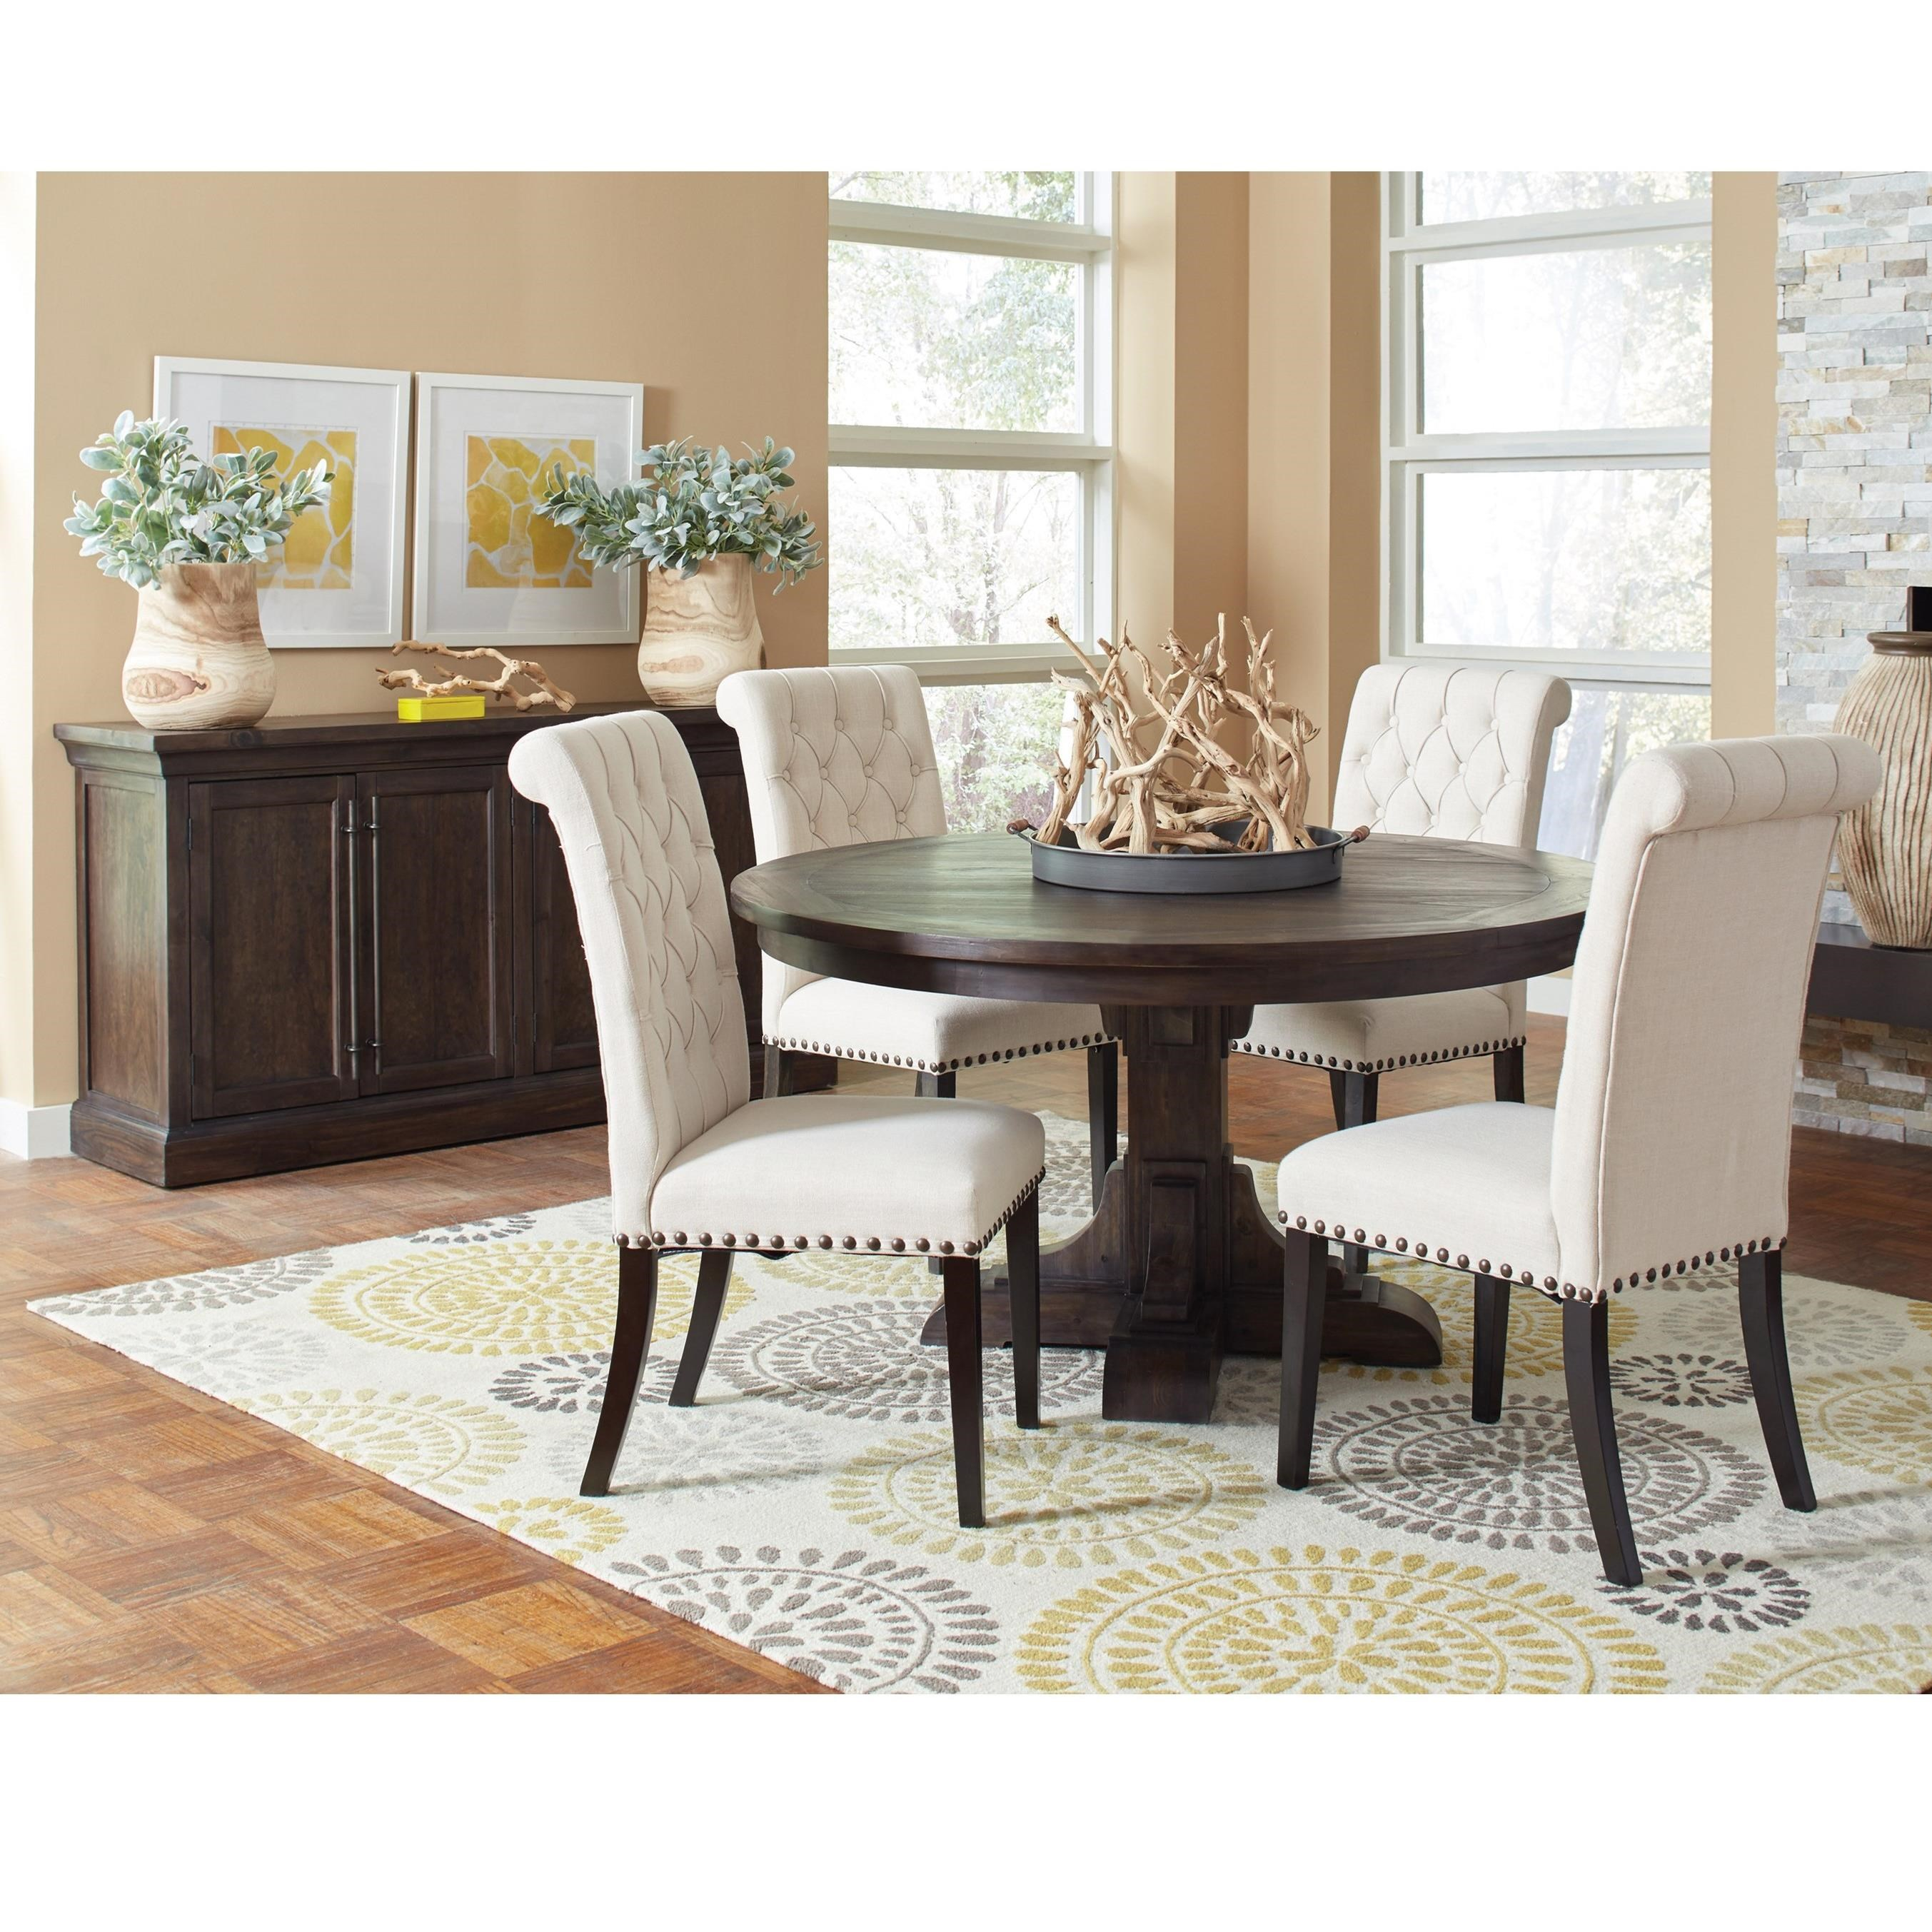 Coaster Weber Casual Dining Room Set   Item Number: 10728 Casual Dining Room  Group 1